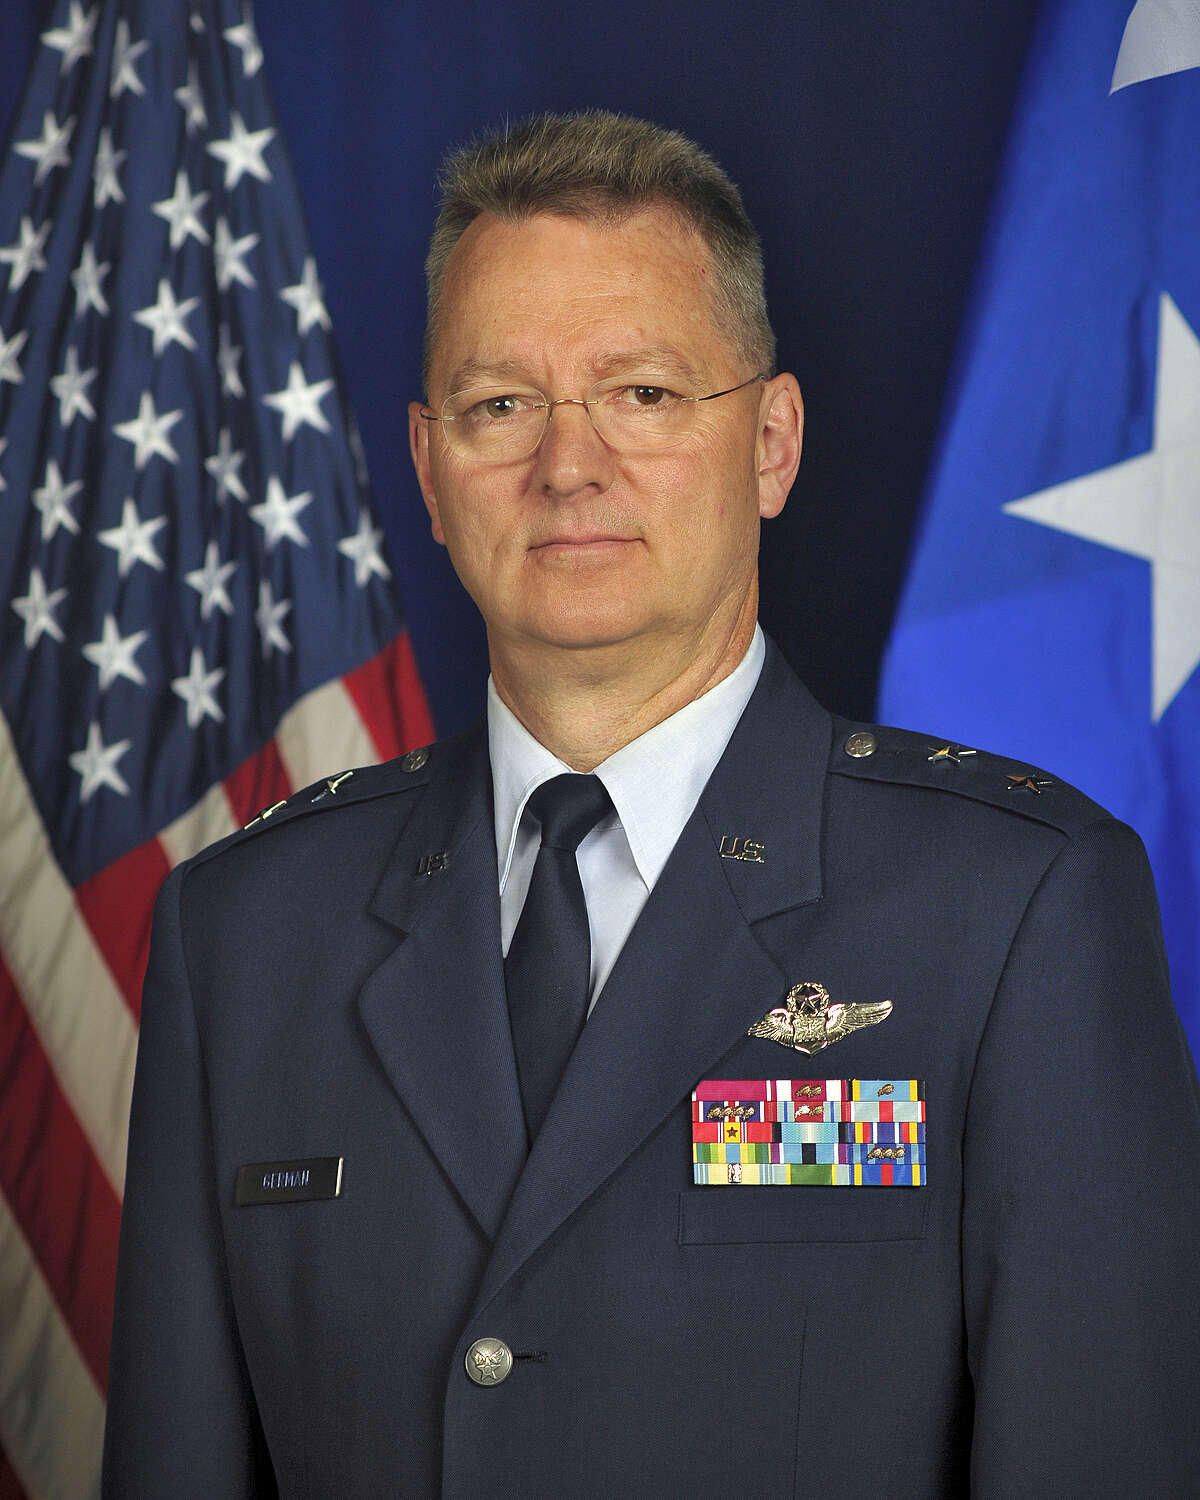 Gov. Andrew M. Cuomo selected Major General Anthony German as the 53rd Adjutant General of New York. (New York State Division of Military and Naval Affairs)